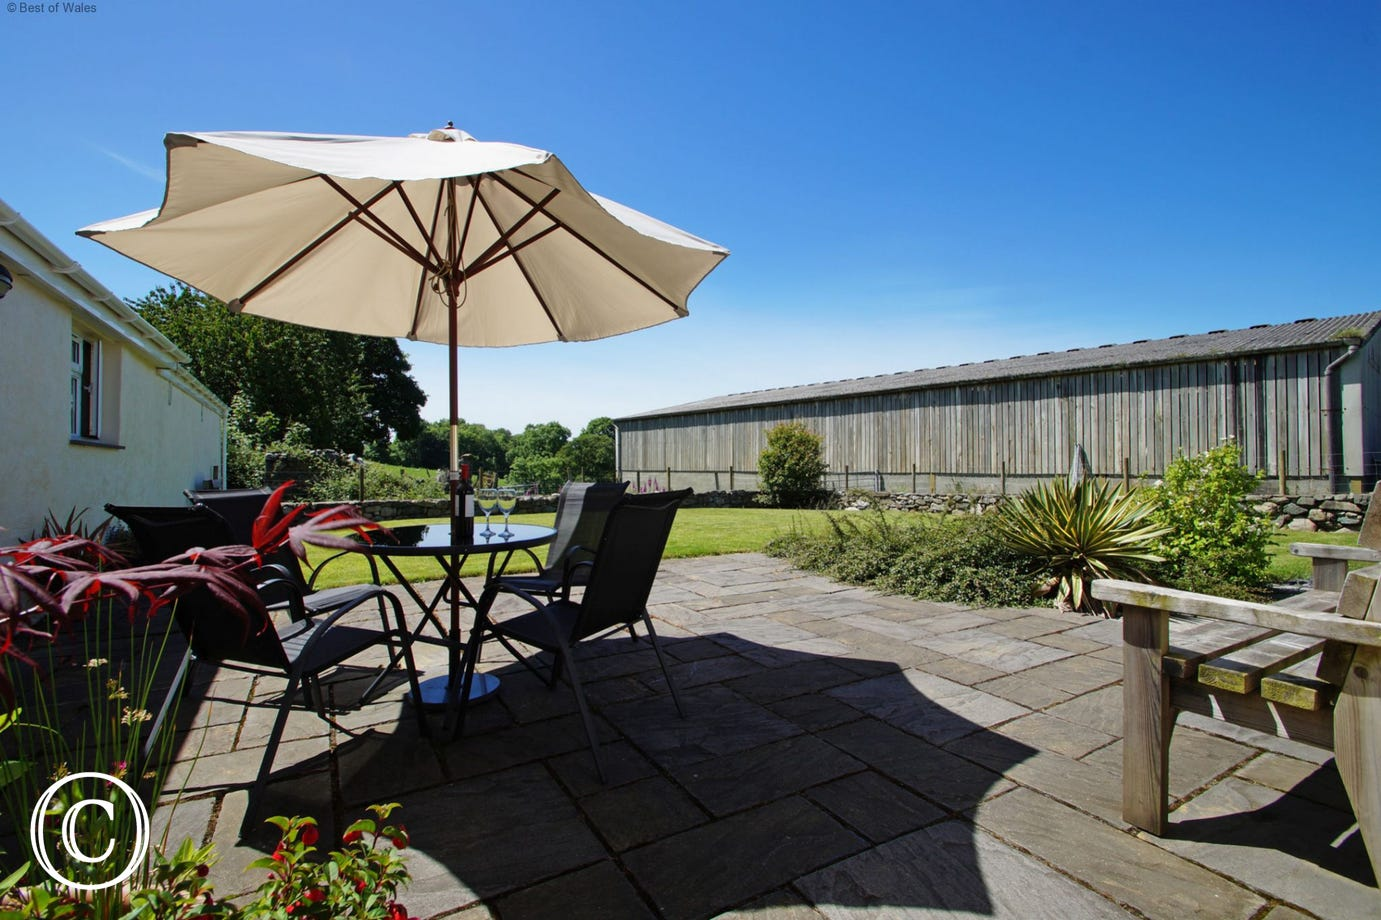 Private patio area and garden furniture in a beautiful, tranquil setting.